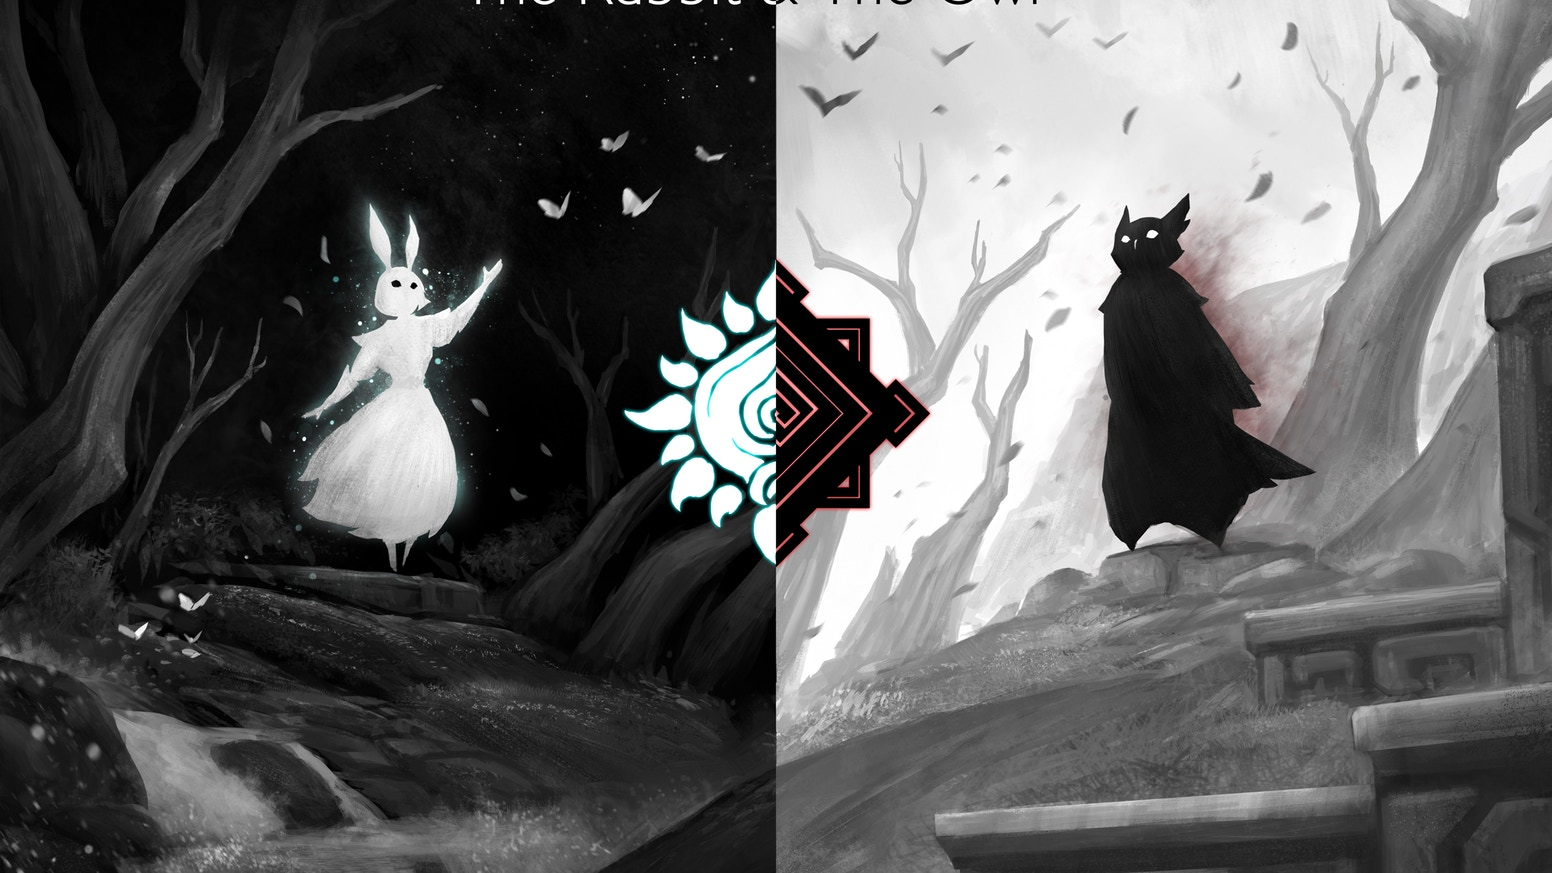 Shader development for The Rabbit and the Owl